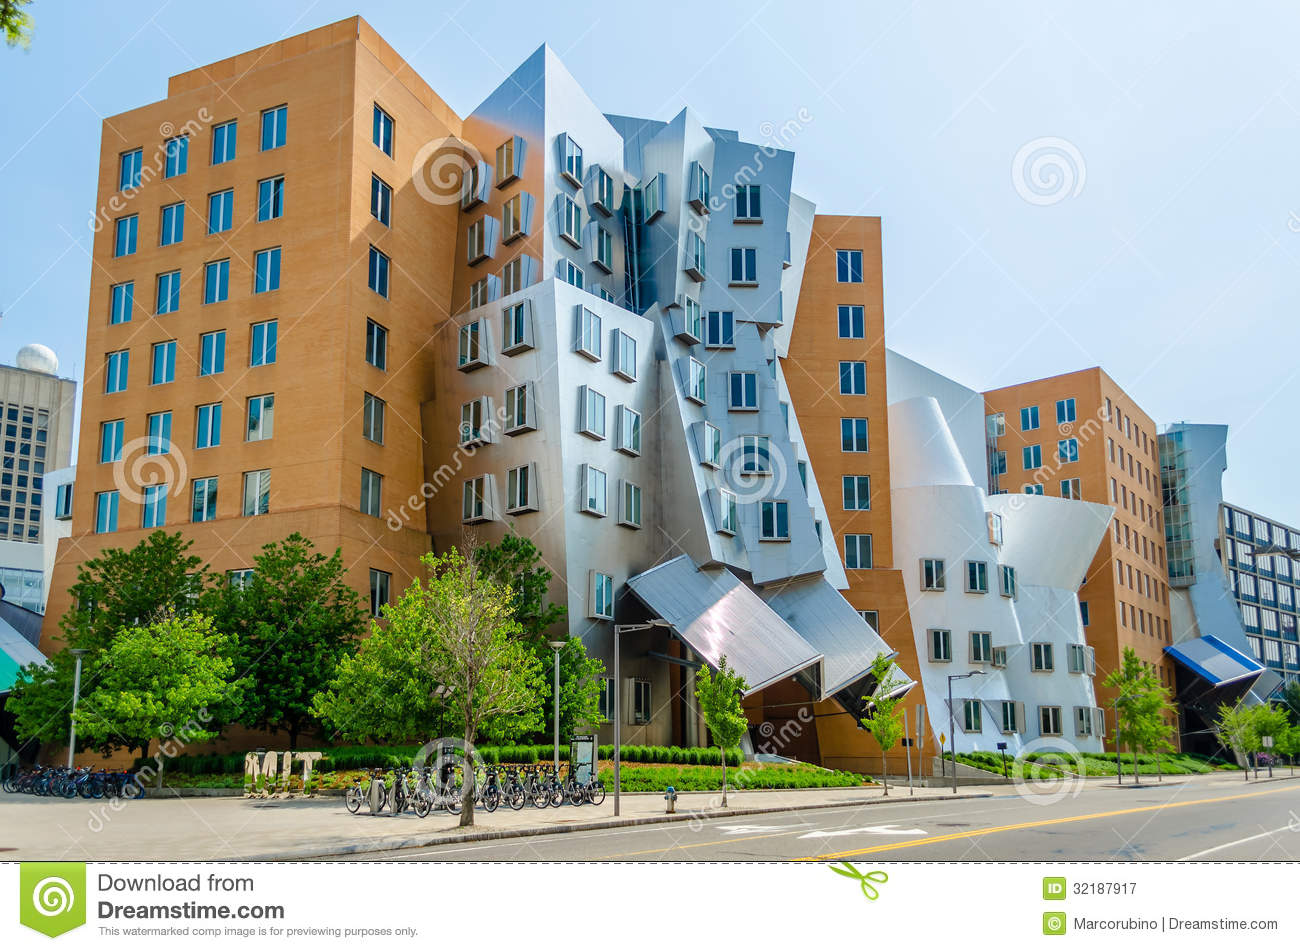 Royalty Free Stock Photography Iconic Postmodern Architecture Mit Strata Center Cambridge Usa Image32187917 on cambridge house plan